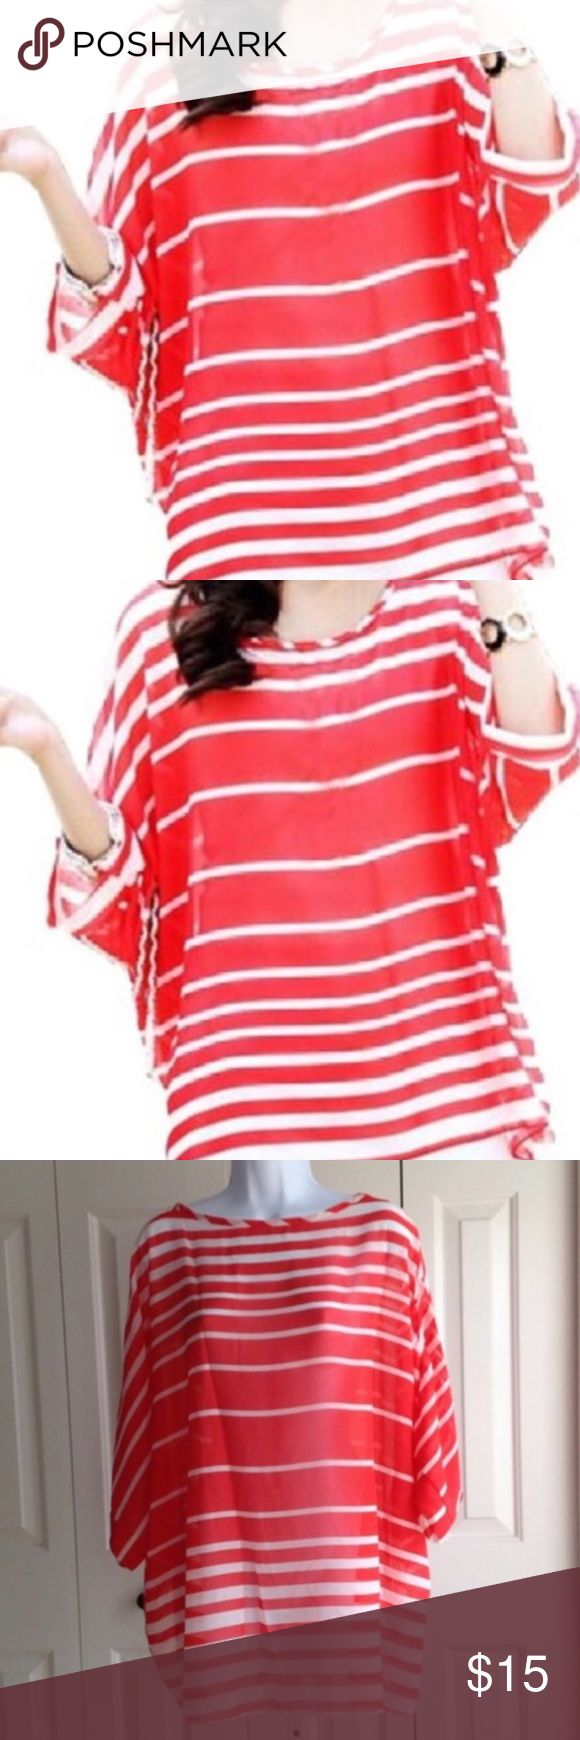 "RED /WHITE BATWING TOP Stylish!! Effortless for the warmer months or vacation. Pairs great with a tank top underneath and you're ready. Red and white stripes with batwing sleeves. Back Length 27"". Front Length 25"". Arm 6"". OSFM. Chiffon. -No trades. EUC 51twenty Tops"